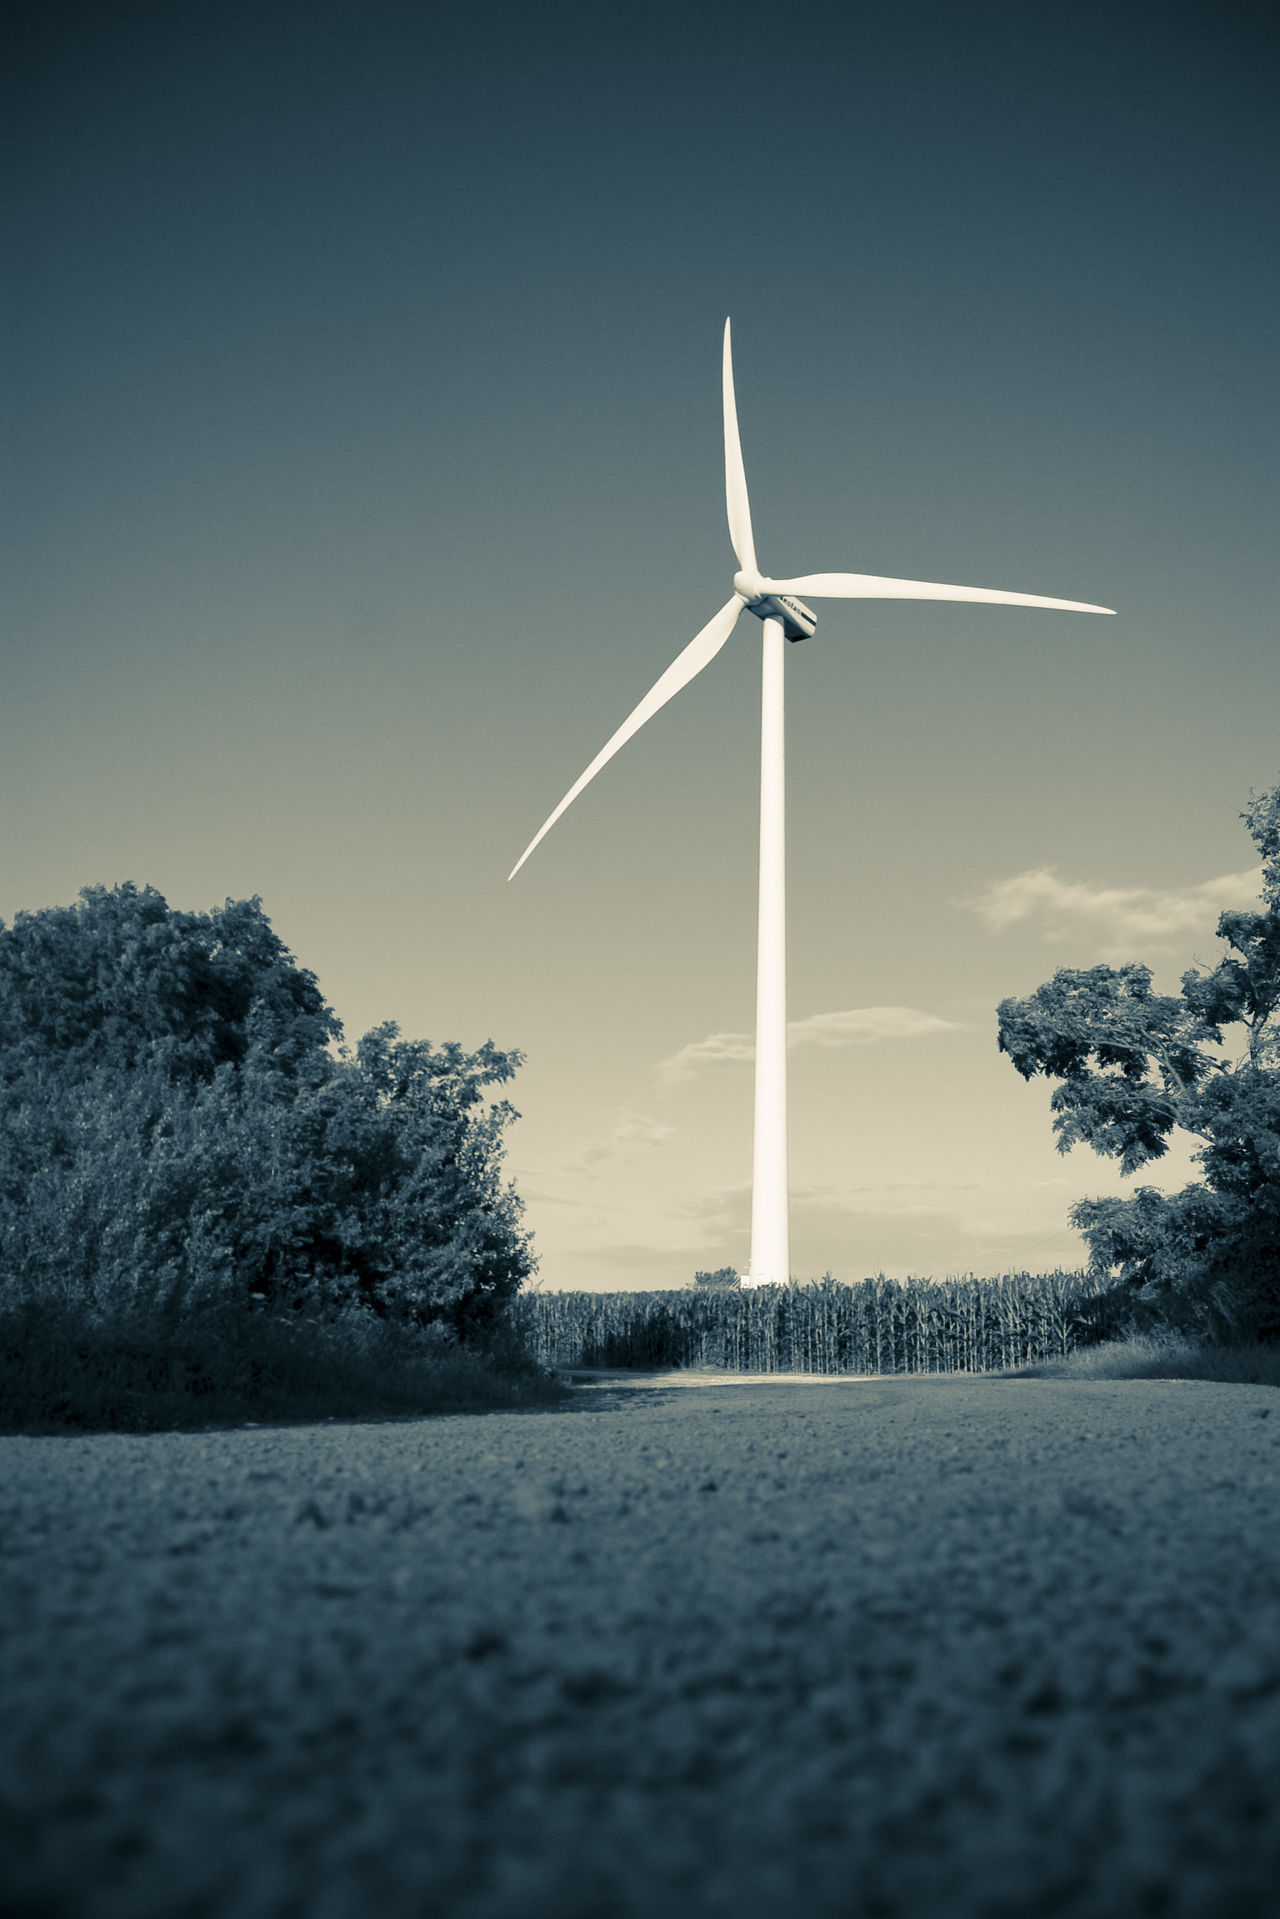 Alternative Energy End Of The Road Environmental Conservation Field With Wind Power Station Green Power Landscape Landscape With Power Station Monochrome Photography Outdoors Power Plant Power Station By Road Technology And Nature Tone Splitting Wind Power Wind Power Generator